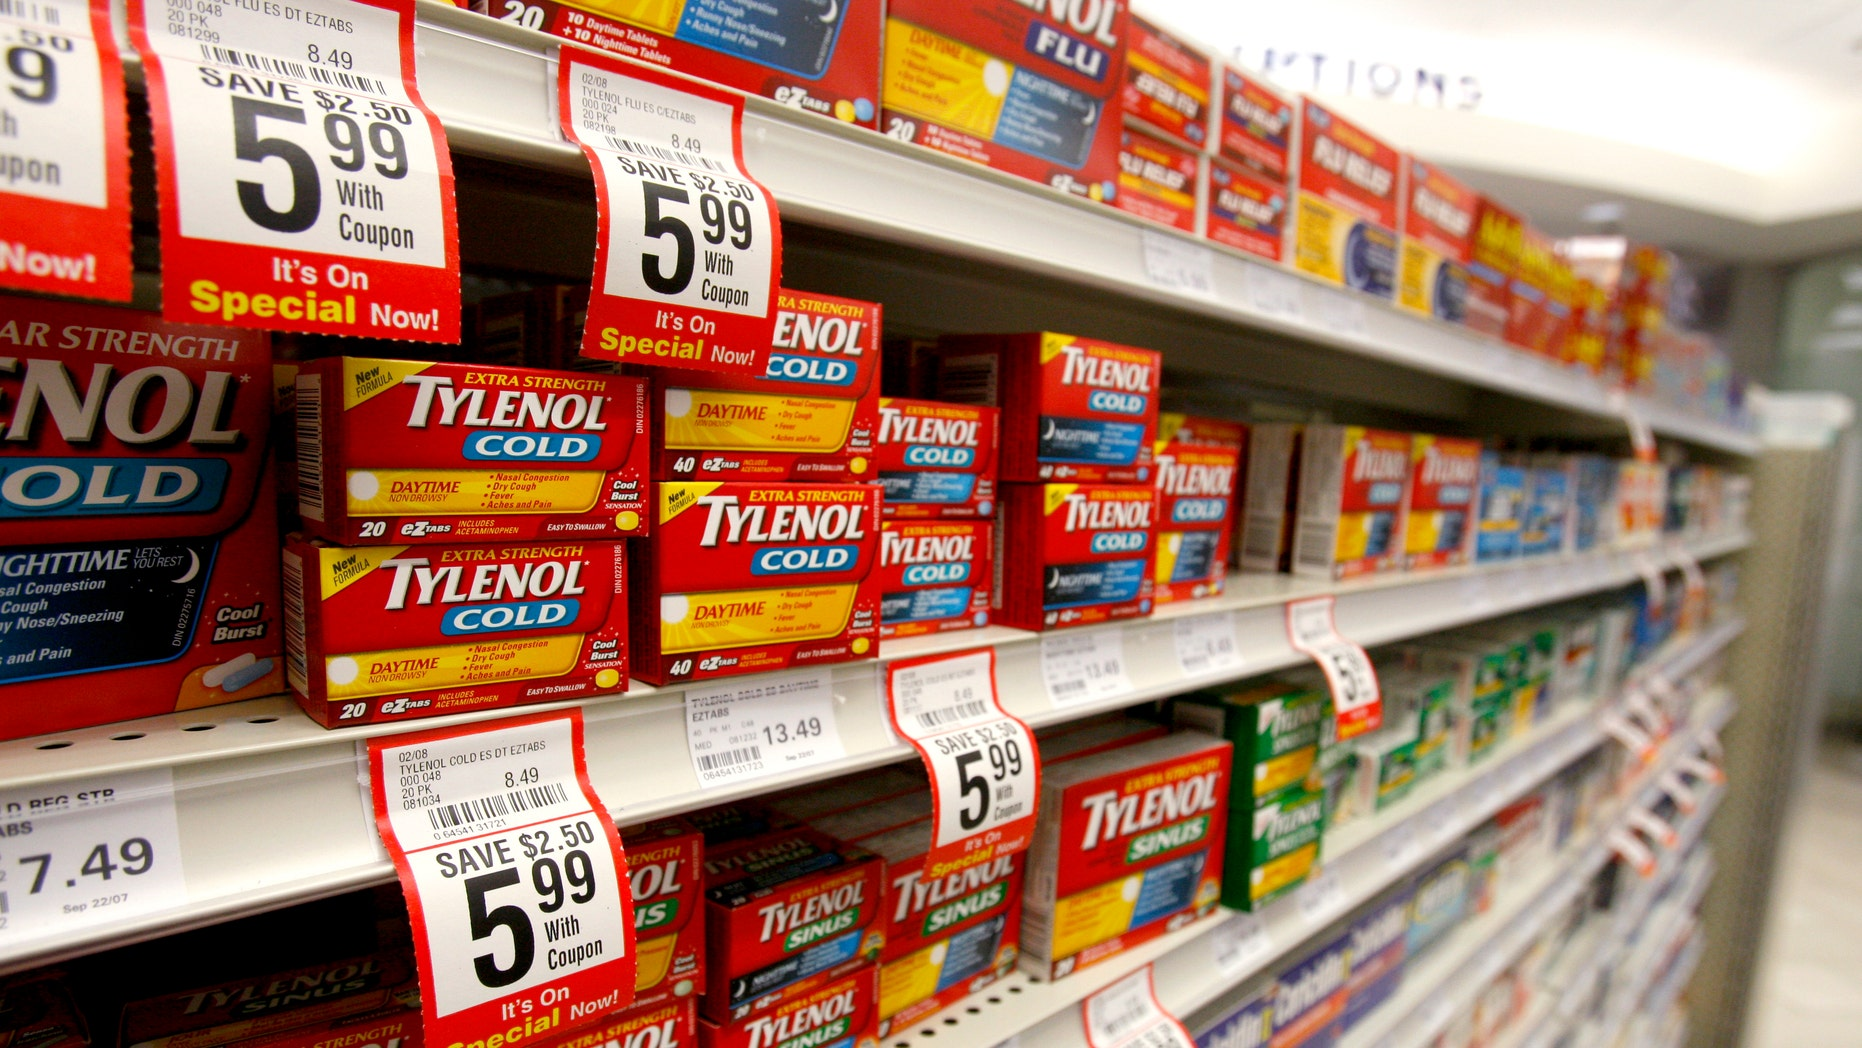 Boxes of Tylenol cold medication are seen in a pharmacy in Toronto January 31, 2008.     REUTERS/Mark Blinch  (CANADA) - RTR1WIZU